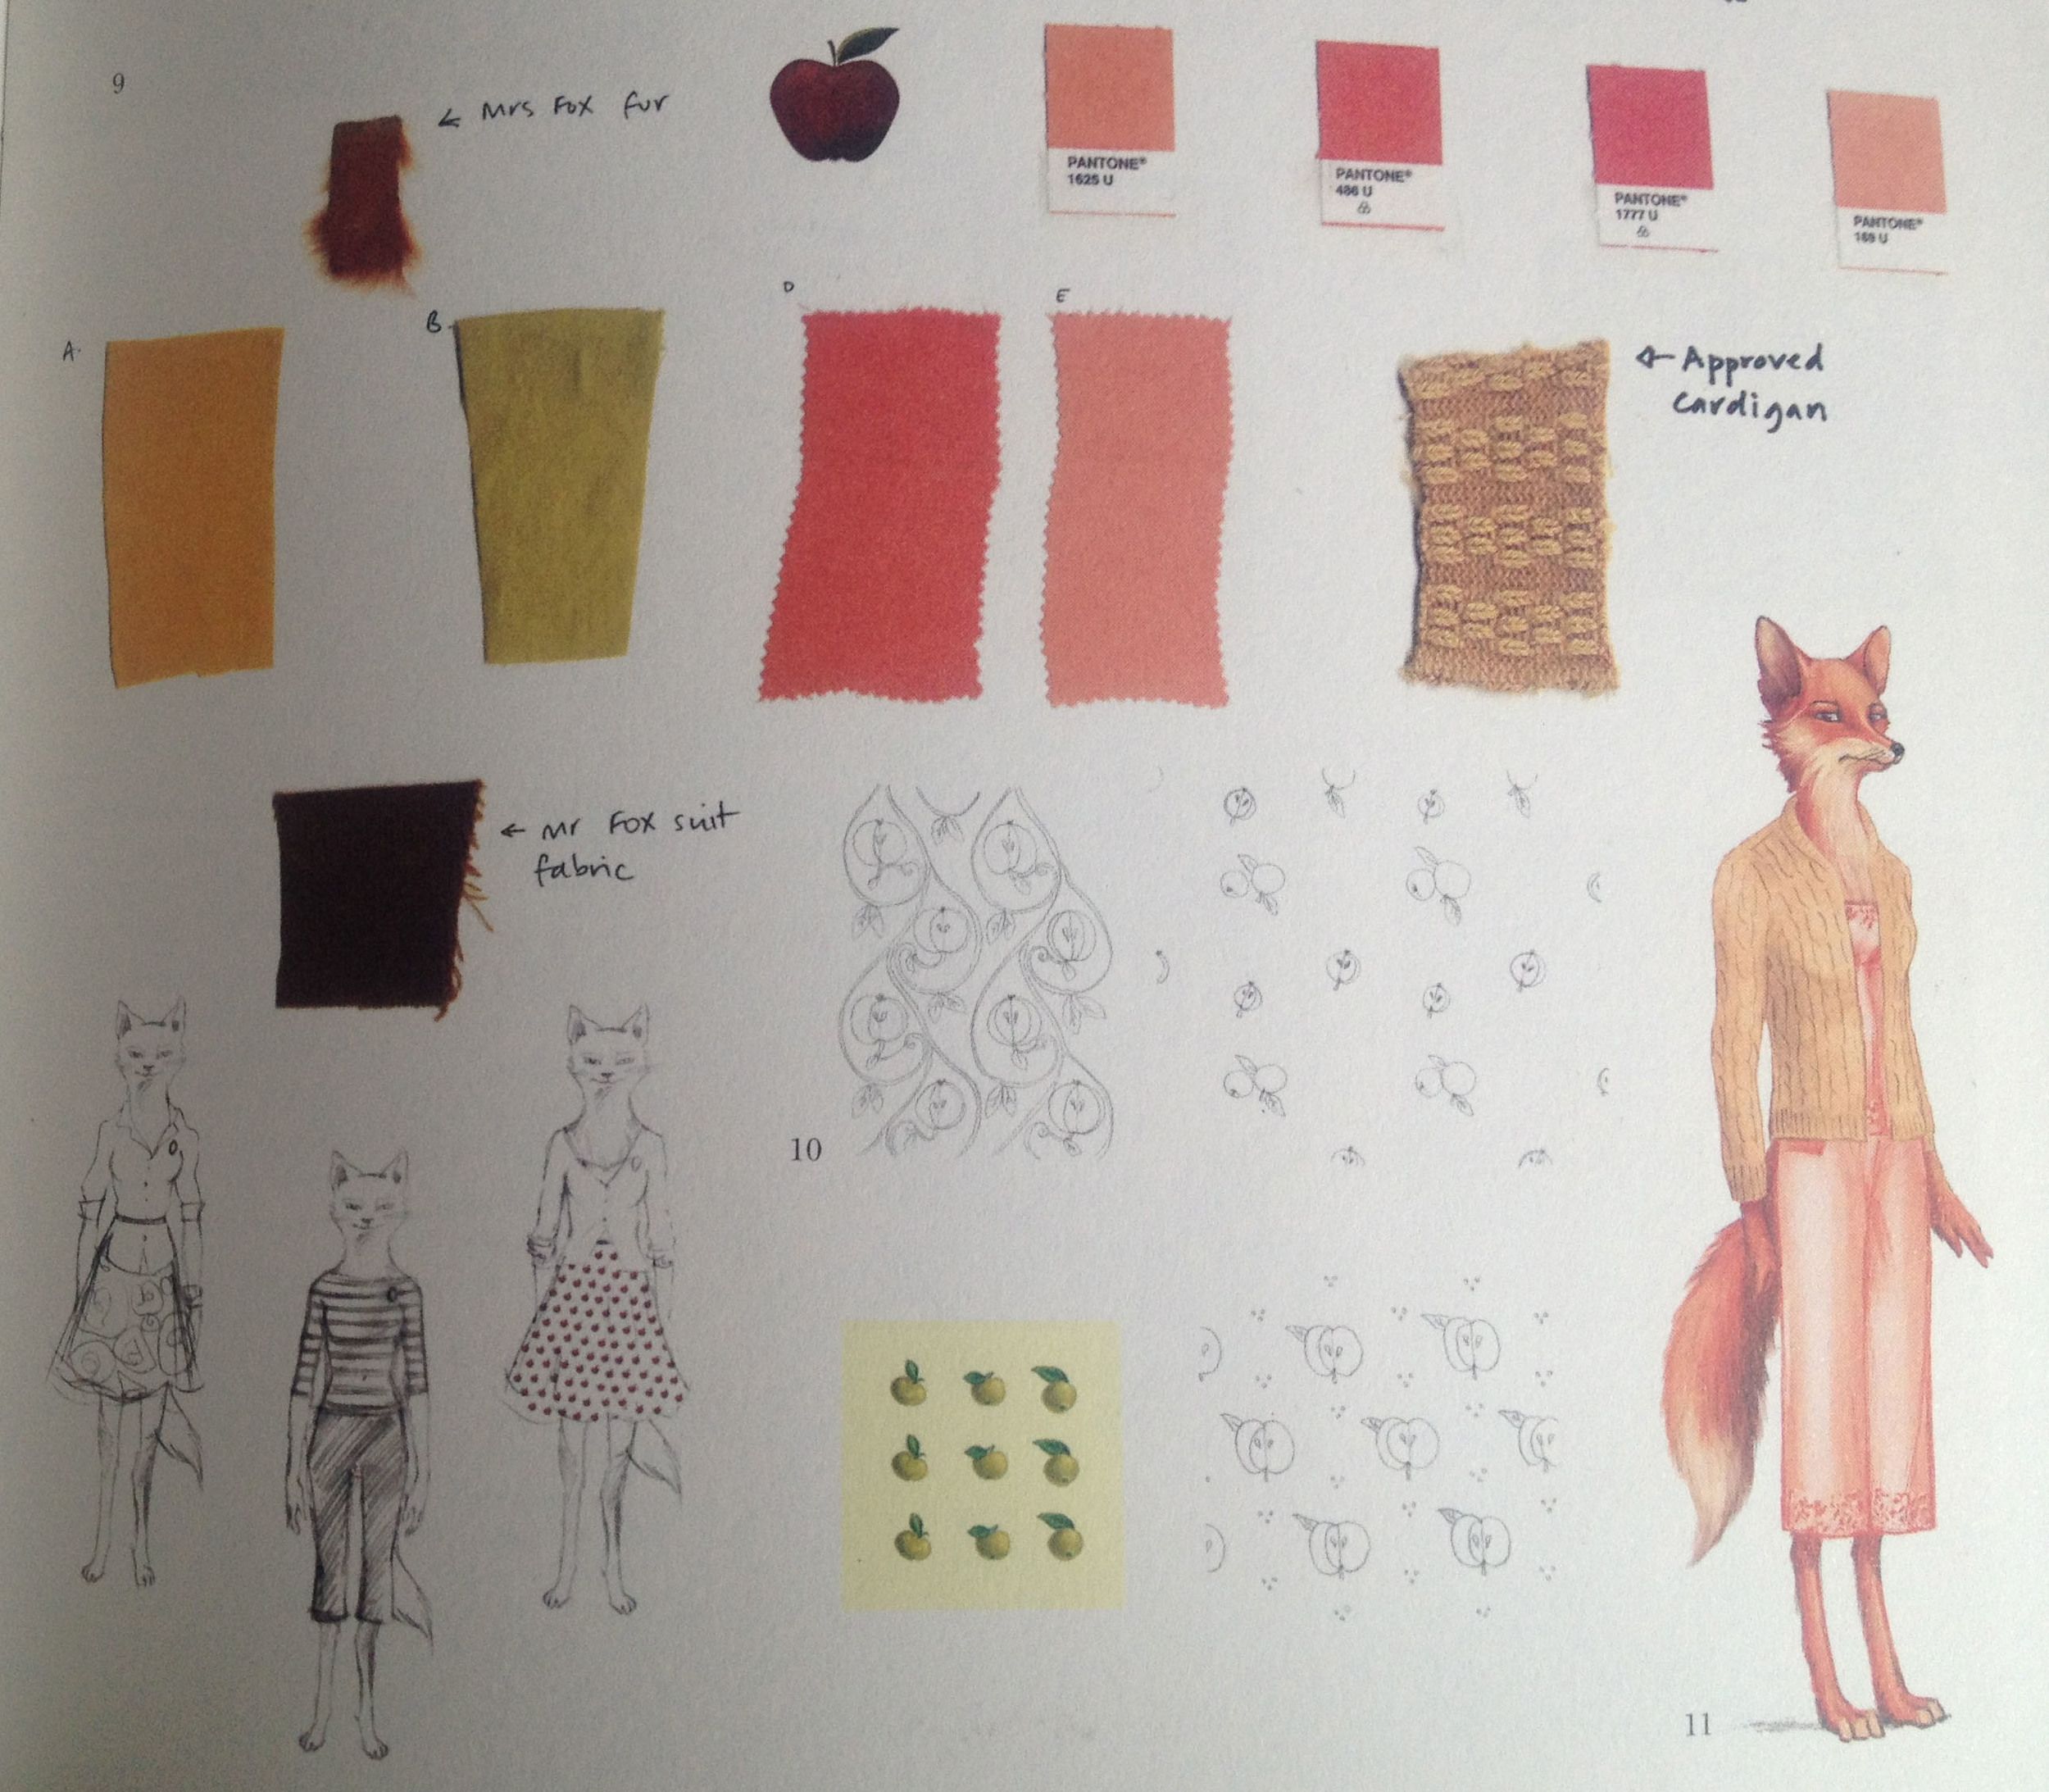 From The Making of Fantastic Mr. Fox - Wes Anderson  http://www.youtube.com/watch?v=jJP31ZiUgeM